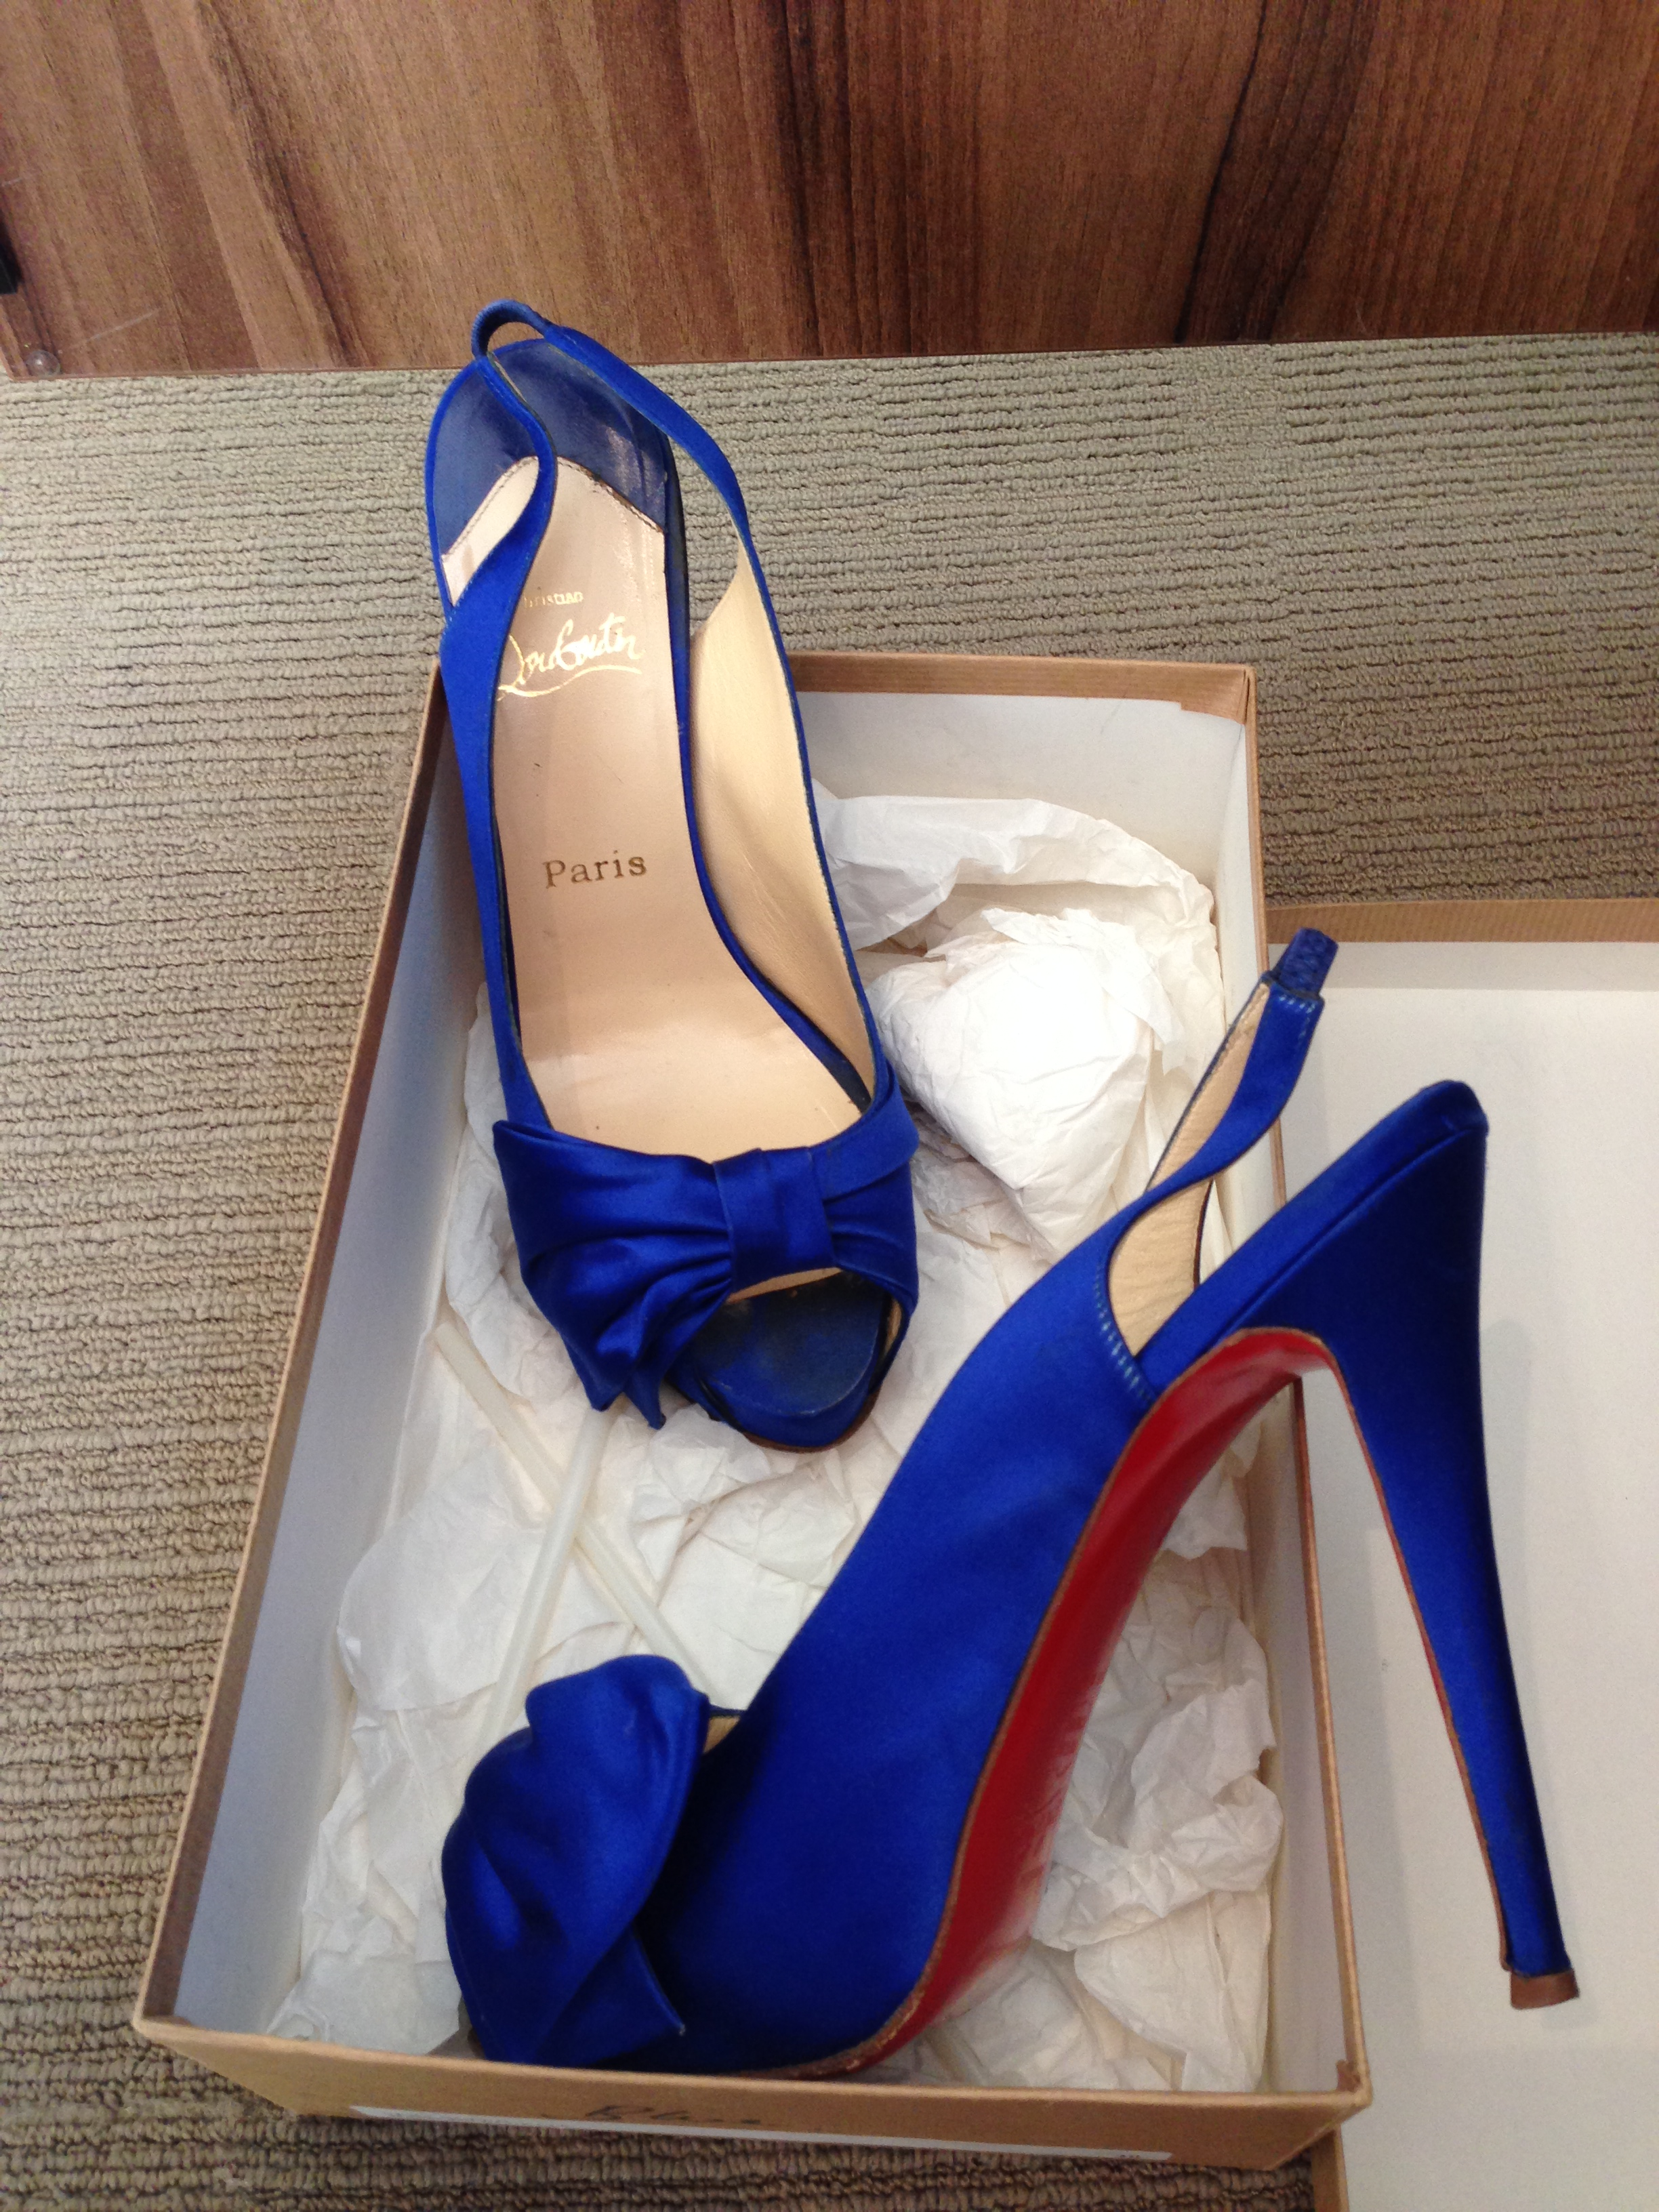 new product f8258 69ea5 Your something Blue? Christian Louboutins for sale! — You ...